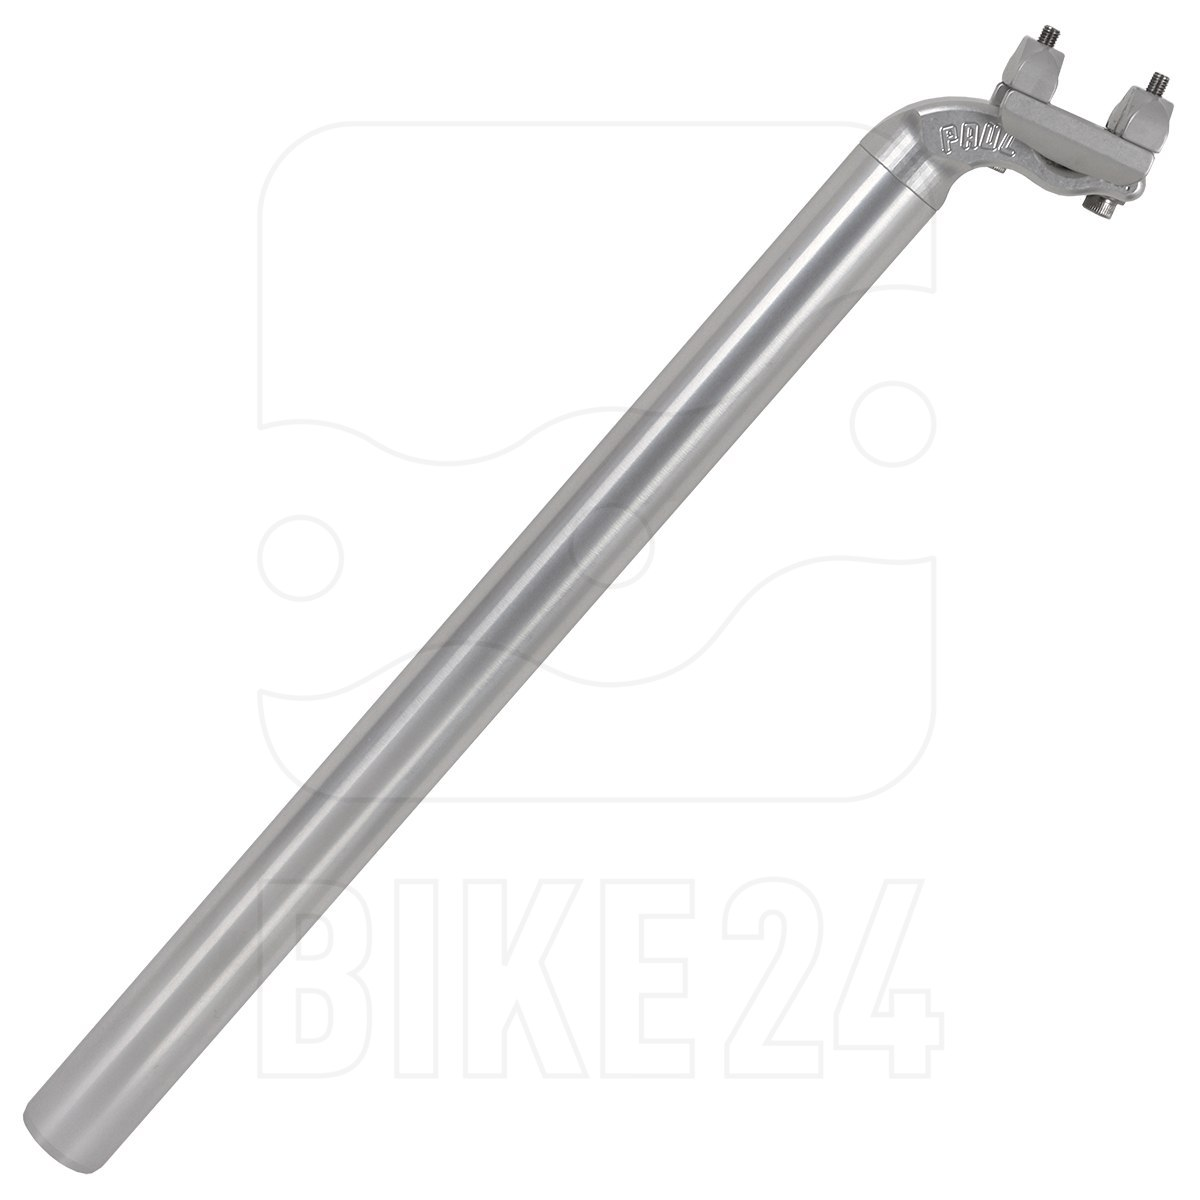 Paul Component Tall & Handsome Seatpost - 27.2mm - silver